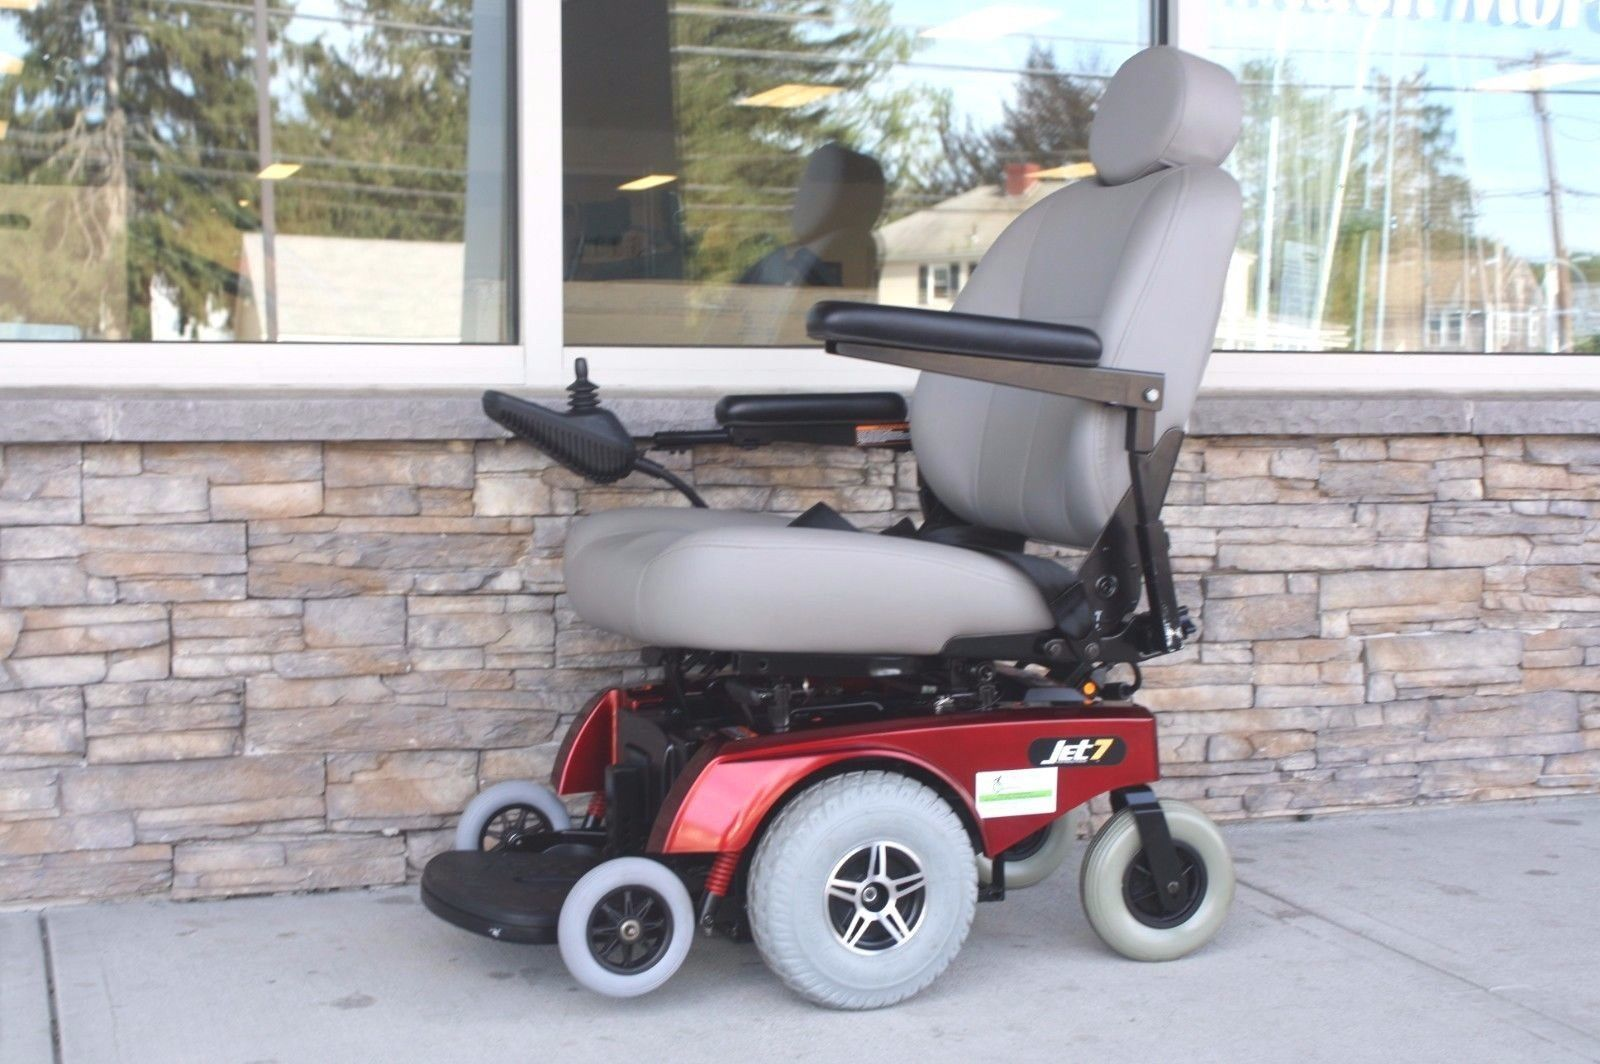 jet 7 power chair kmart table and chairs red pride mobility mid wheel drive wheelchair